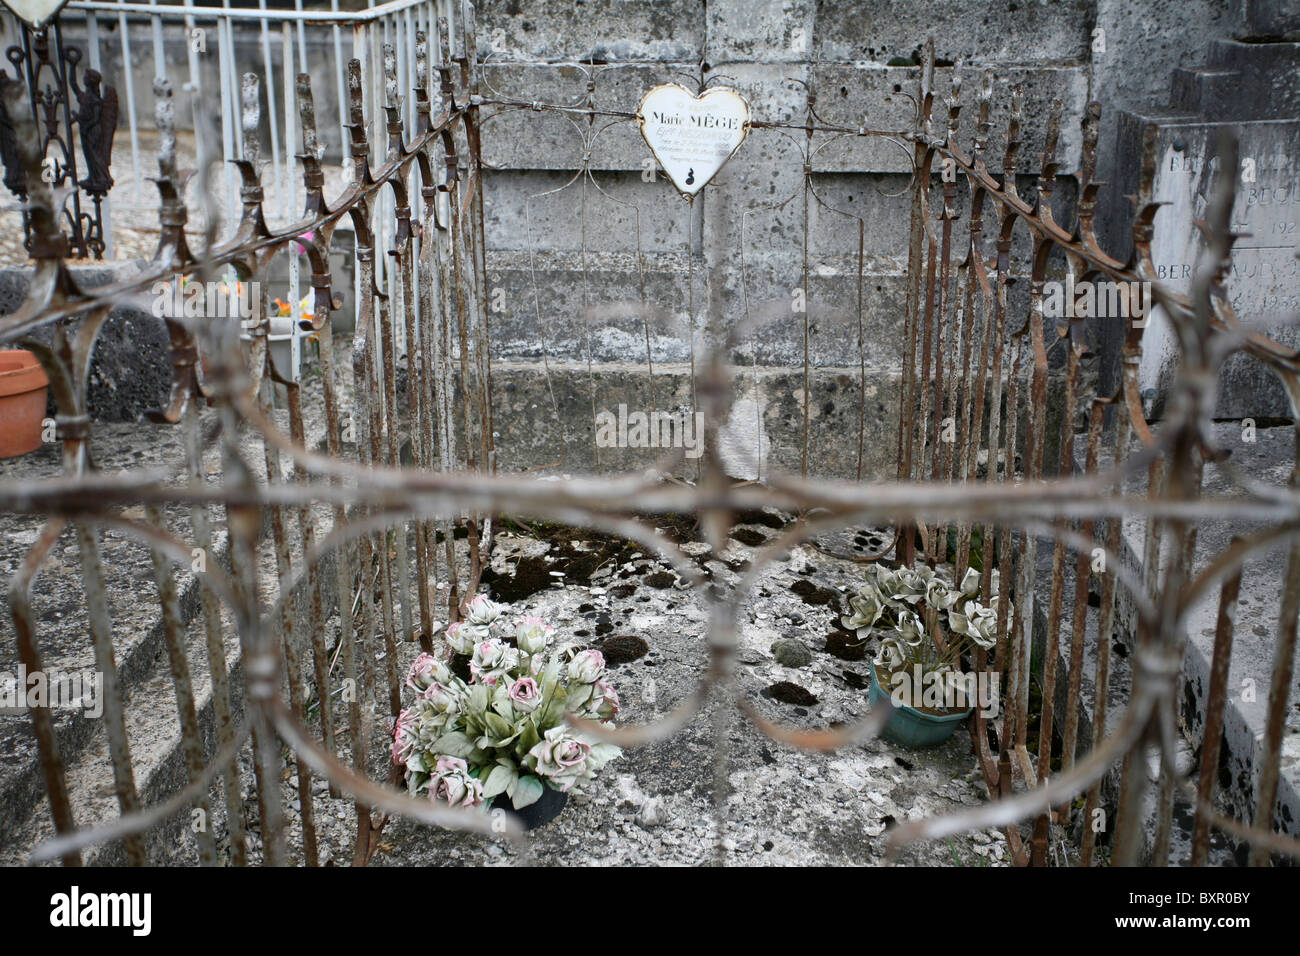 Old cemented tomb enclosed by decorative metal railings with heart nameplate & 2 weathered fake potted plants, - Stock Image